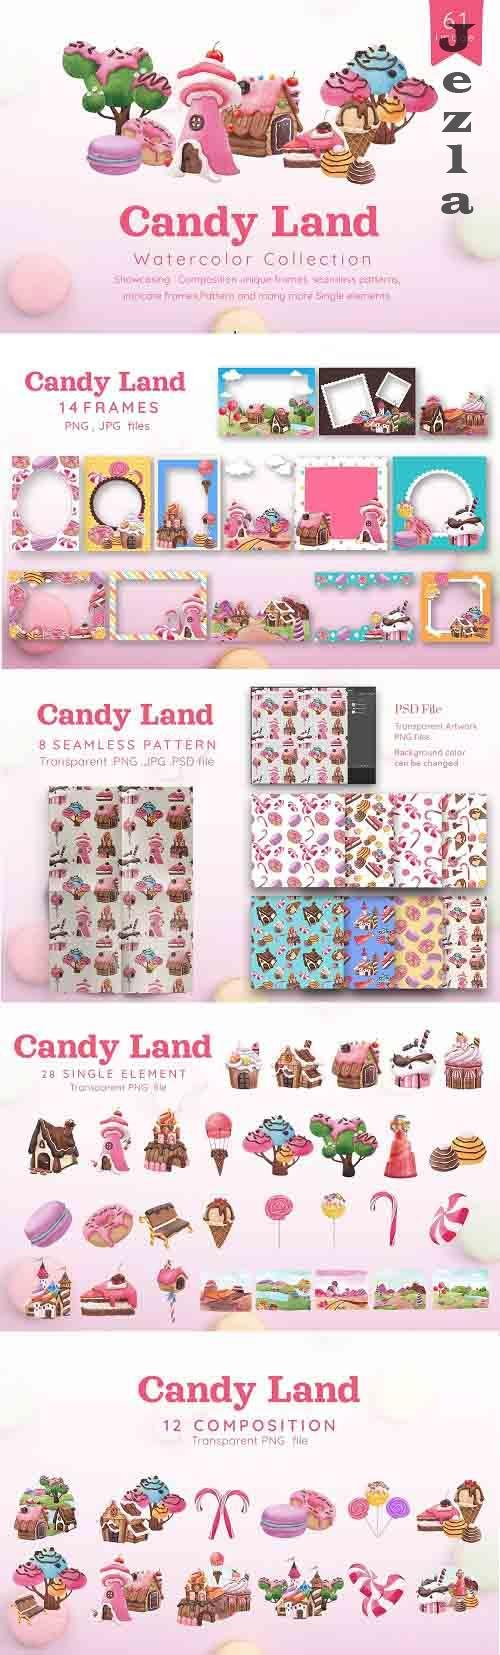 Sweet Candy Land, Cartoon Watercolor - 6114907